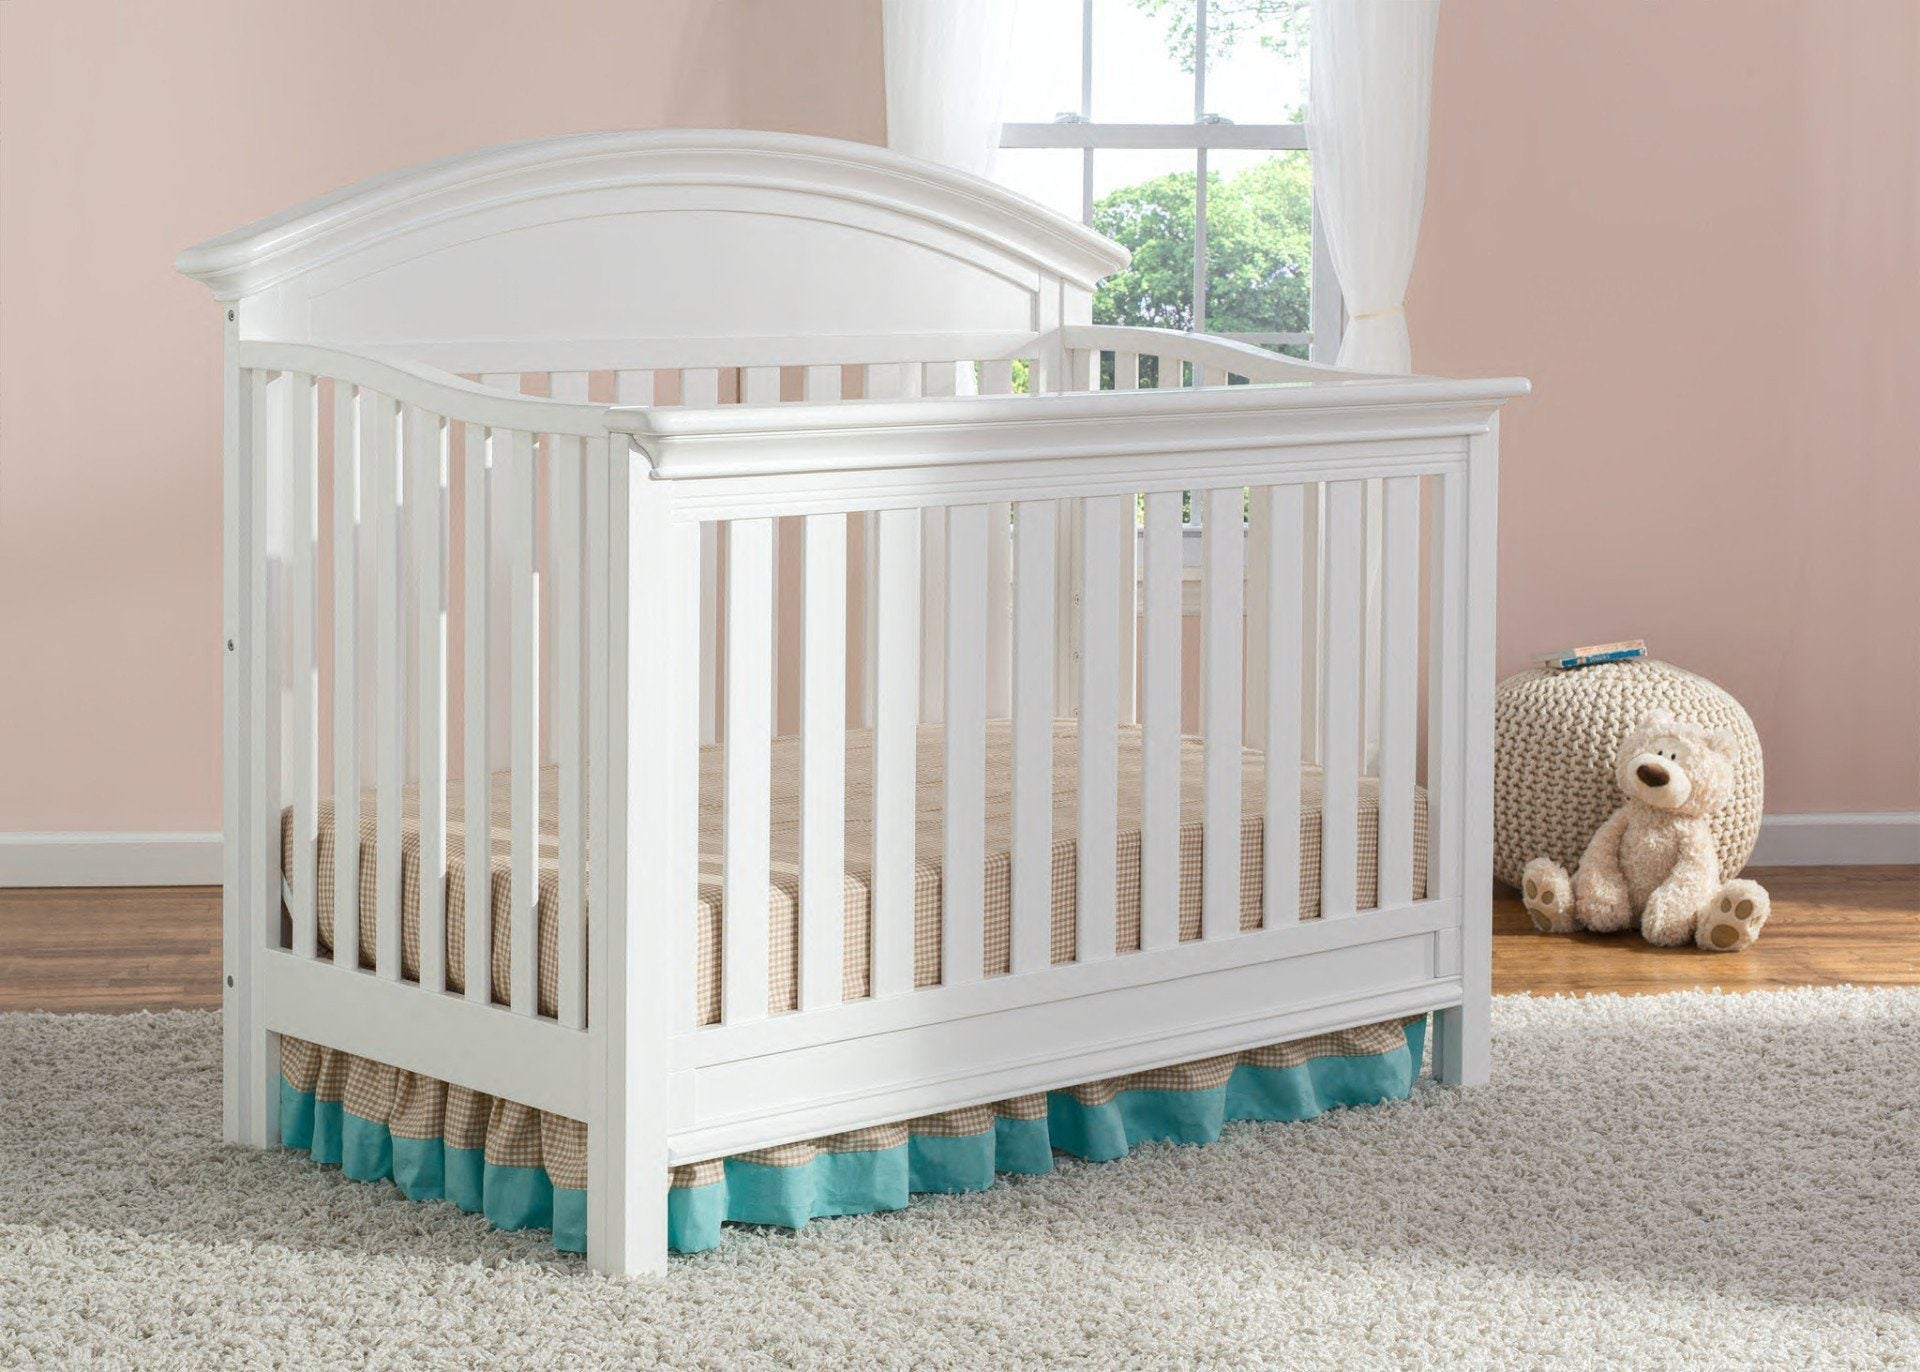 Serta Bianca (130) Aberdeen 4-in-1 Crib, Crib Conversion in Setting 2 b2b